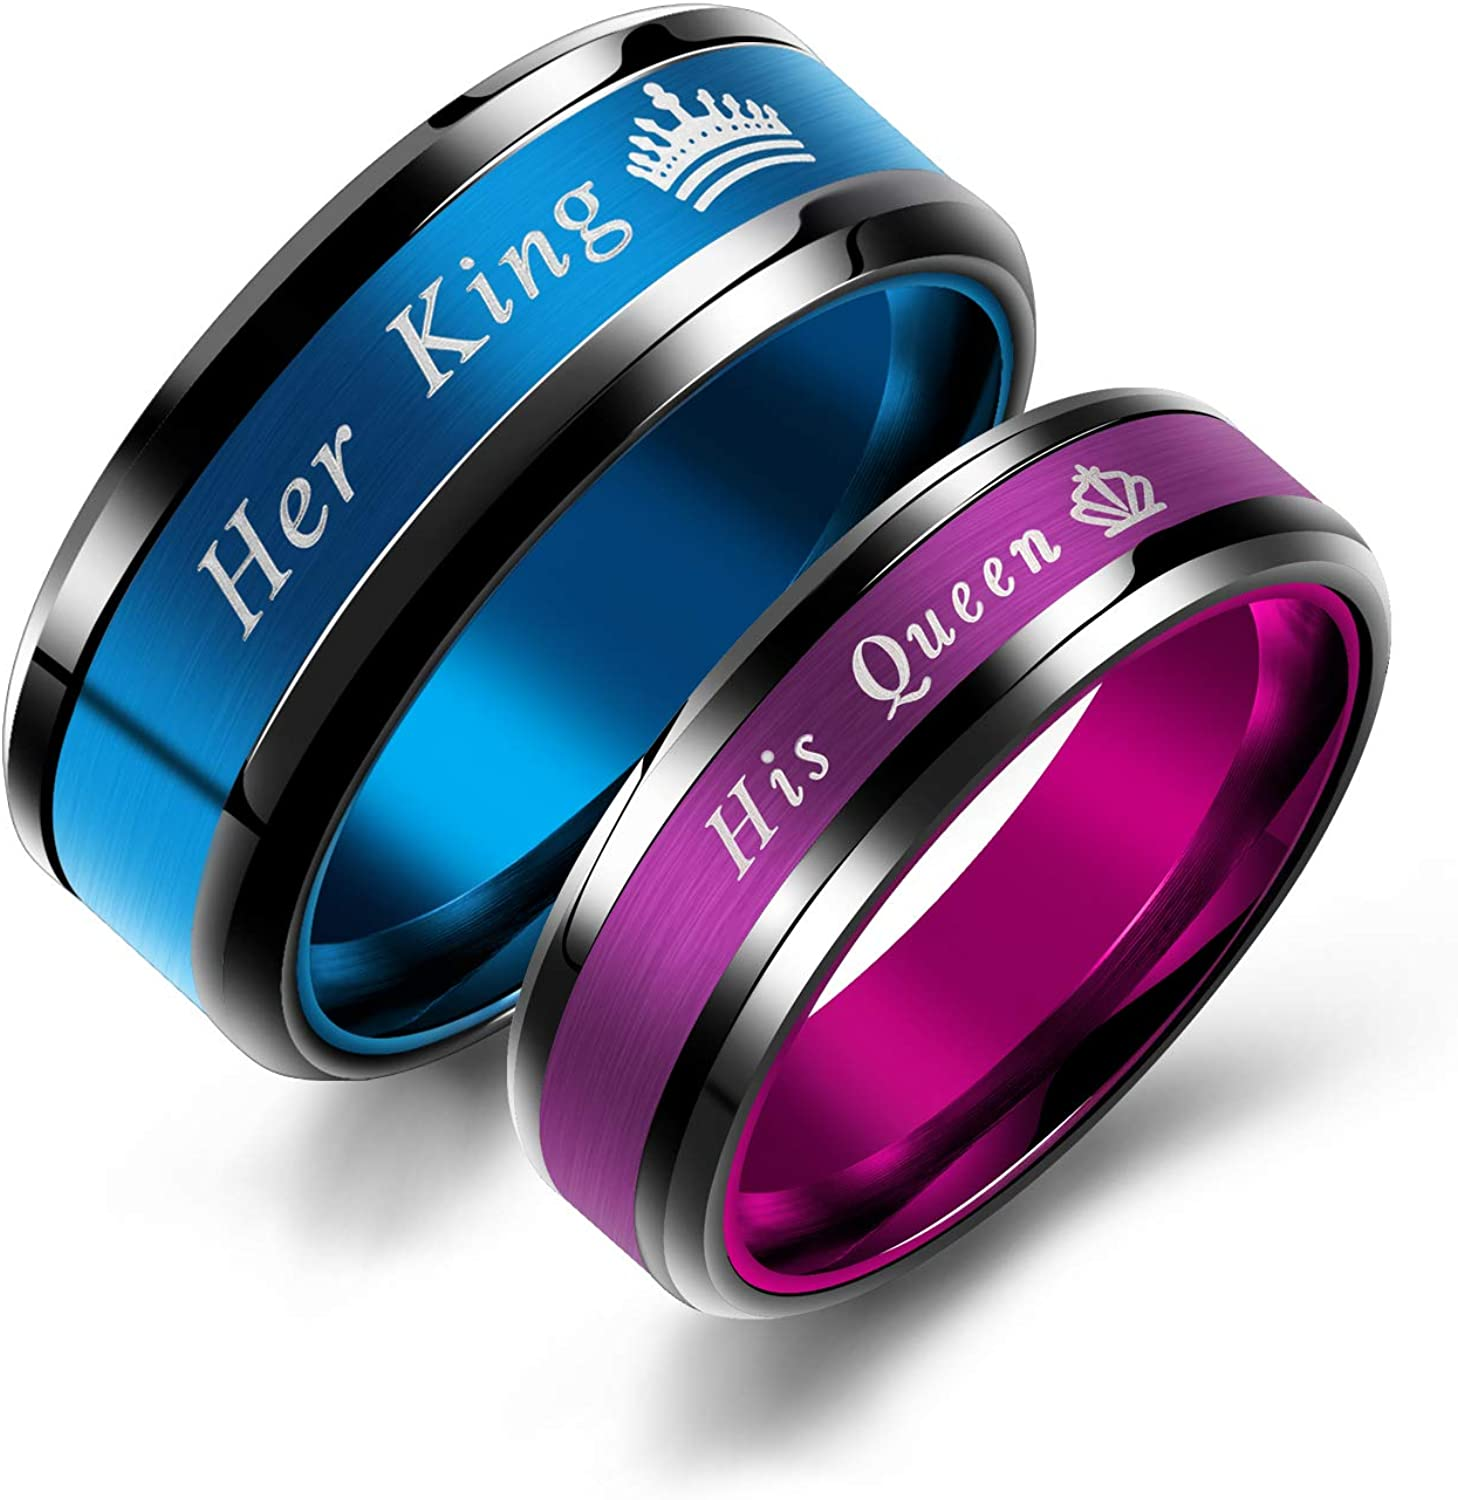 Iflytree 2pcs His and Her Wedding Engagement Band His Hers King and Queen Couples Rings Stainless Steel Matching Ring Sets for Him and Her